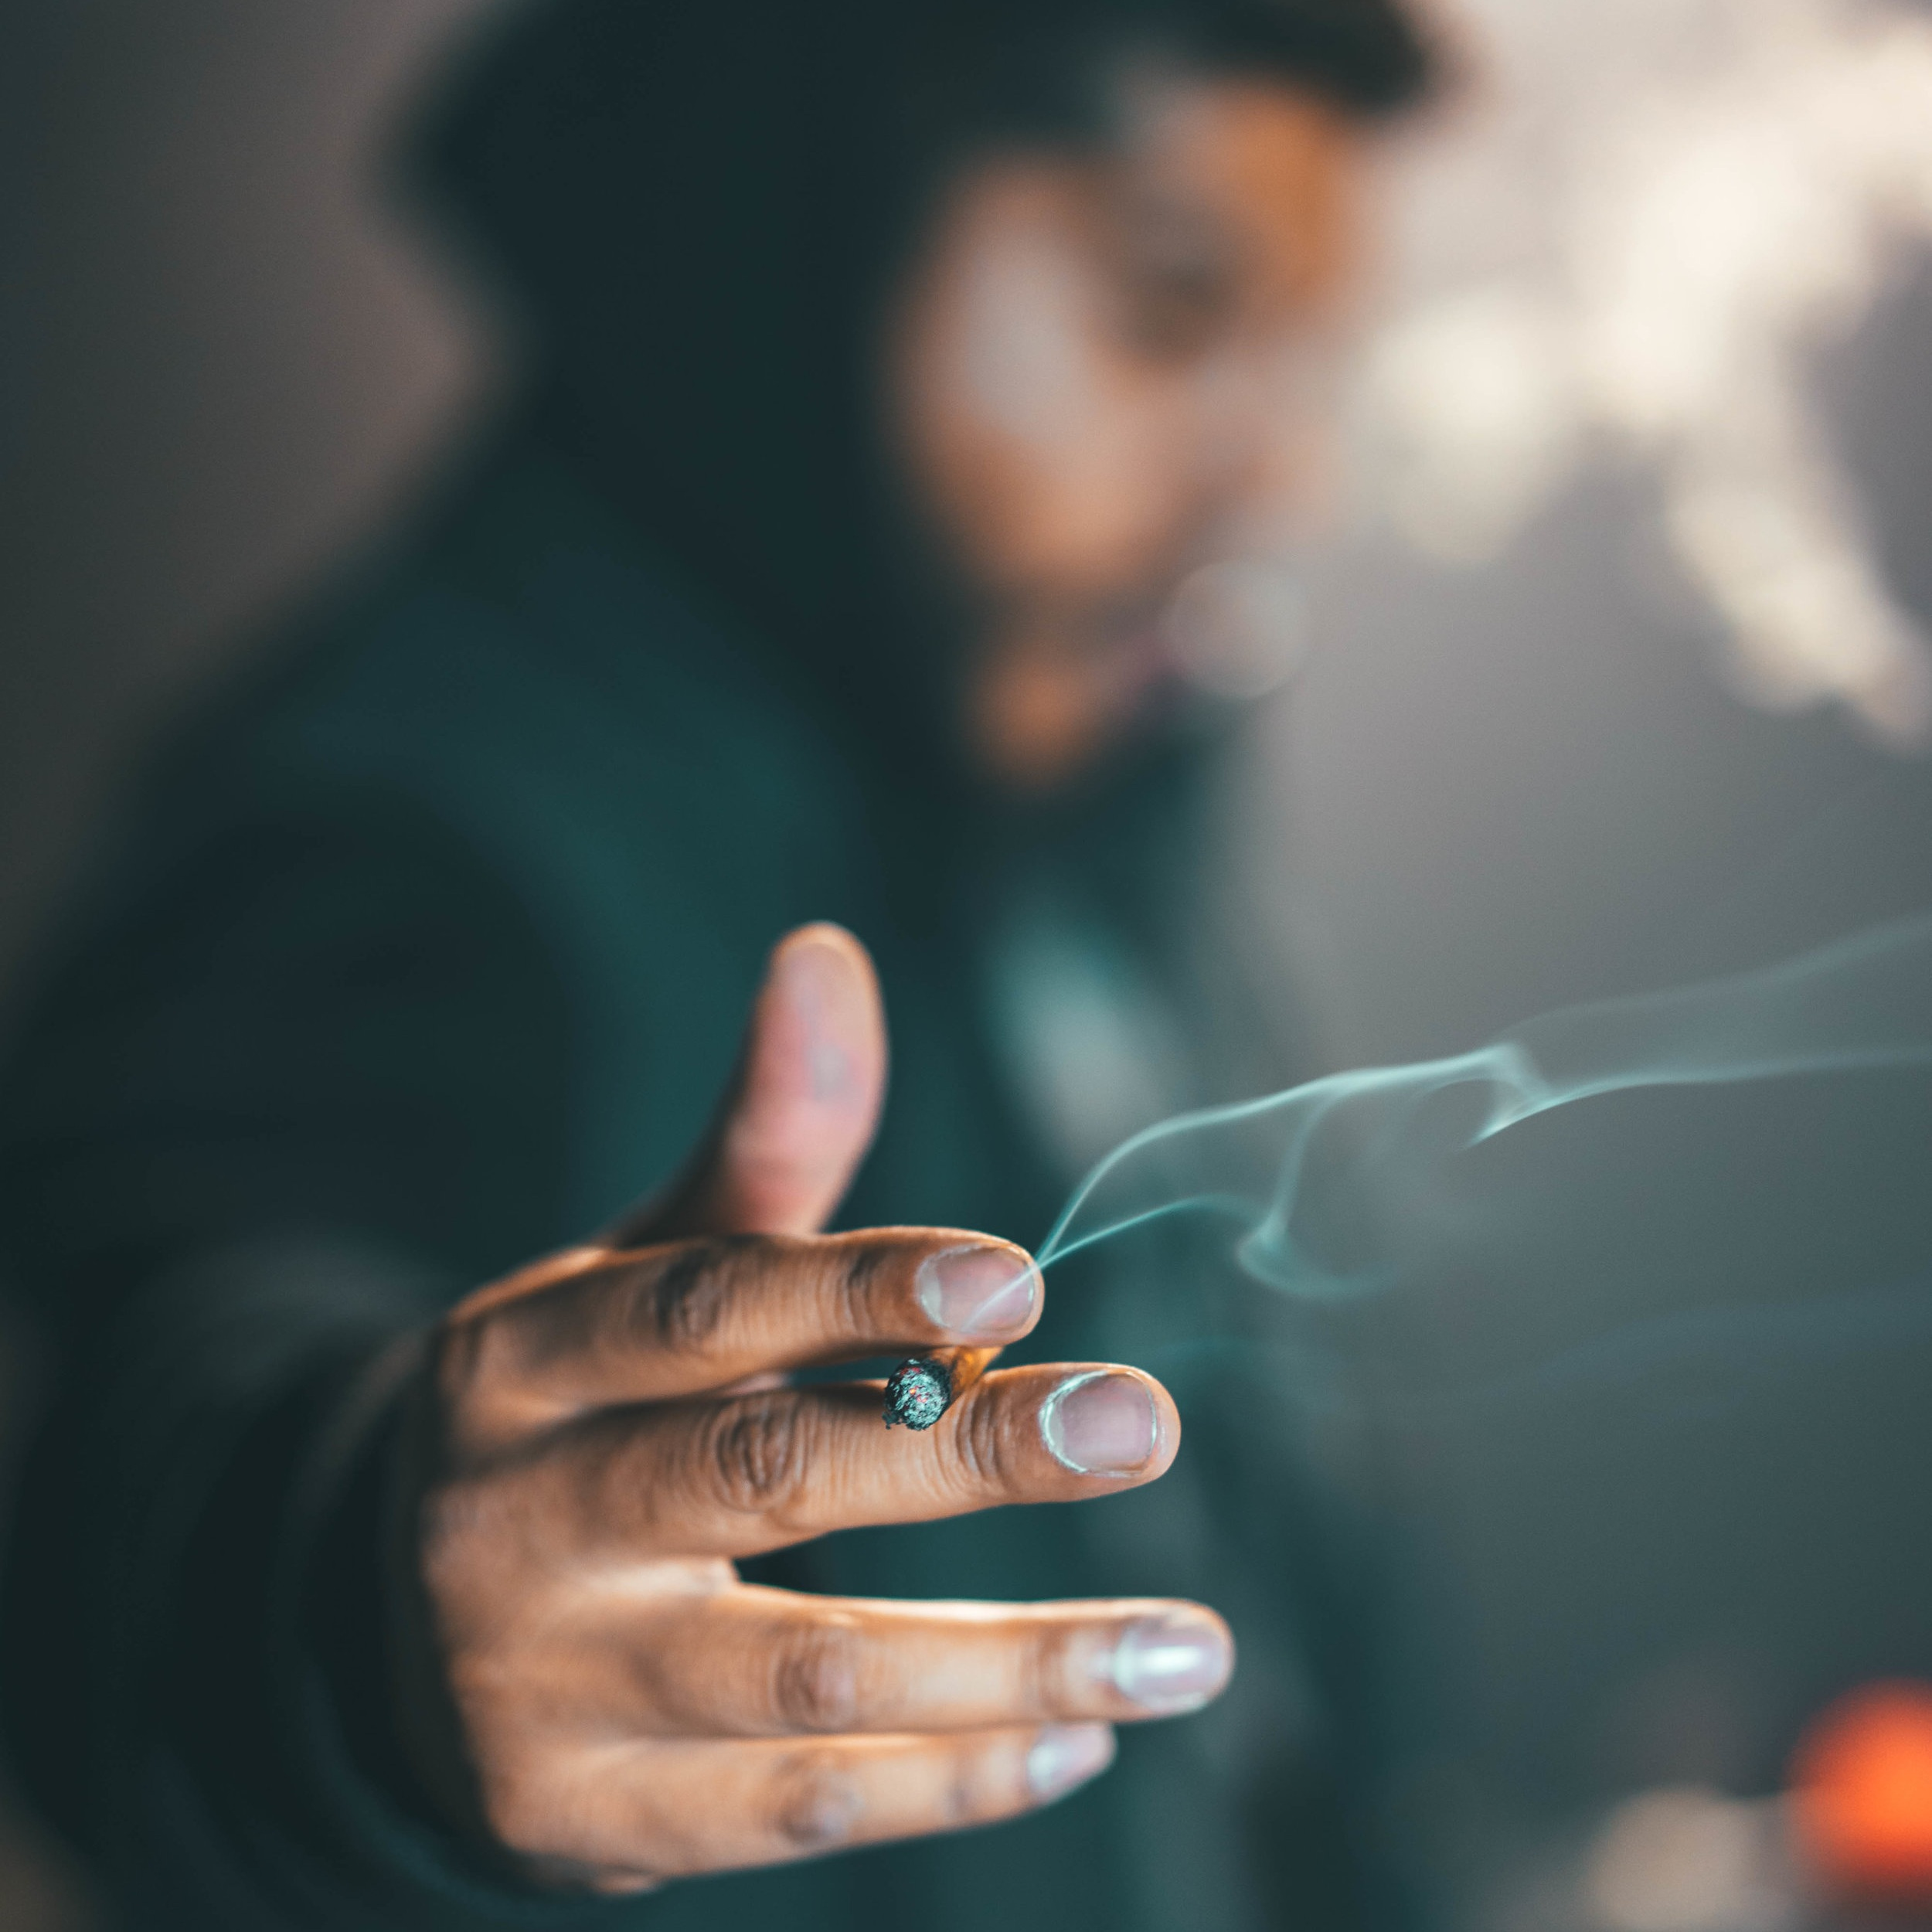 """For decades many have claimed that smoking cannabis would make you """"stupid."""" From drug campaigns to Republican campaigns, there have been many people who opposed marijuana. -"""